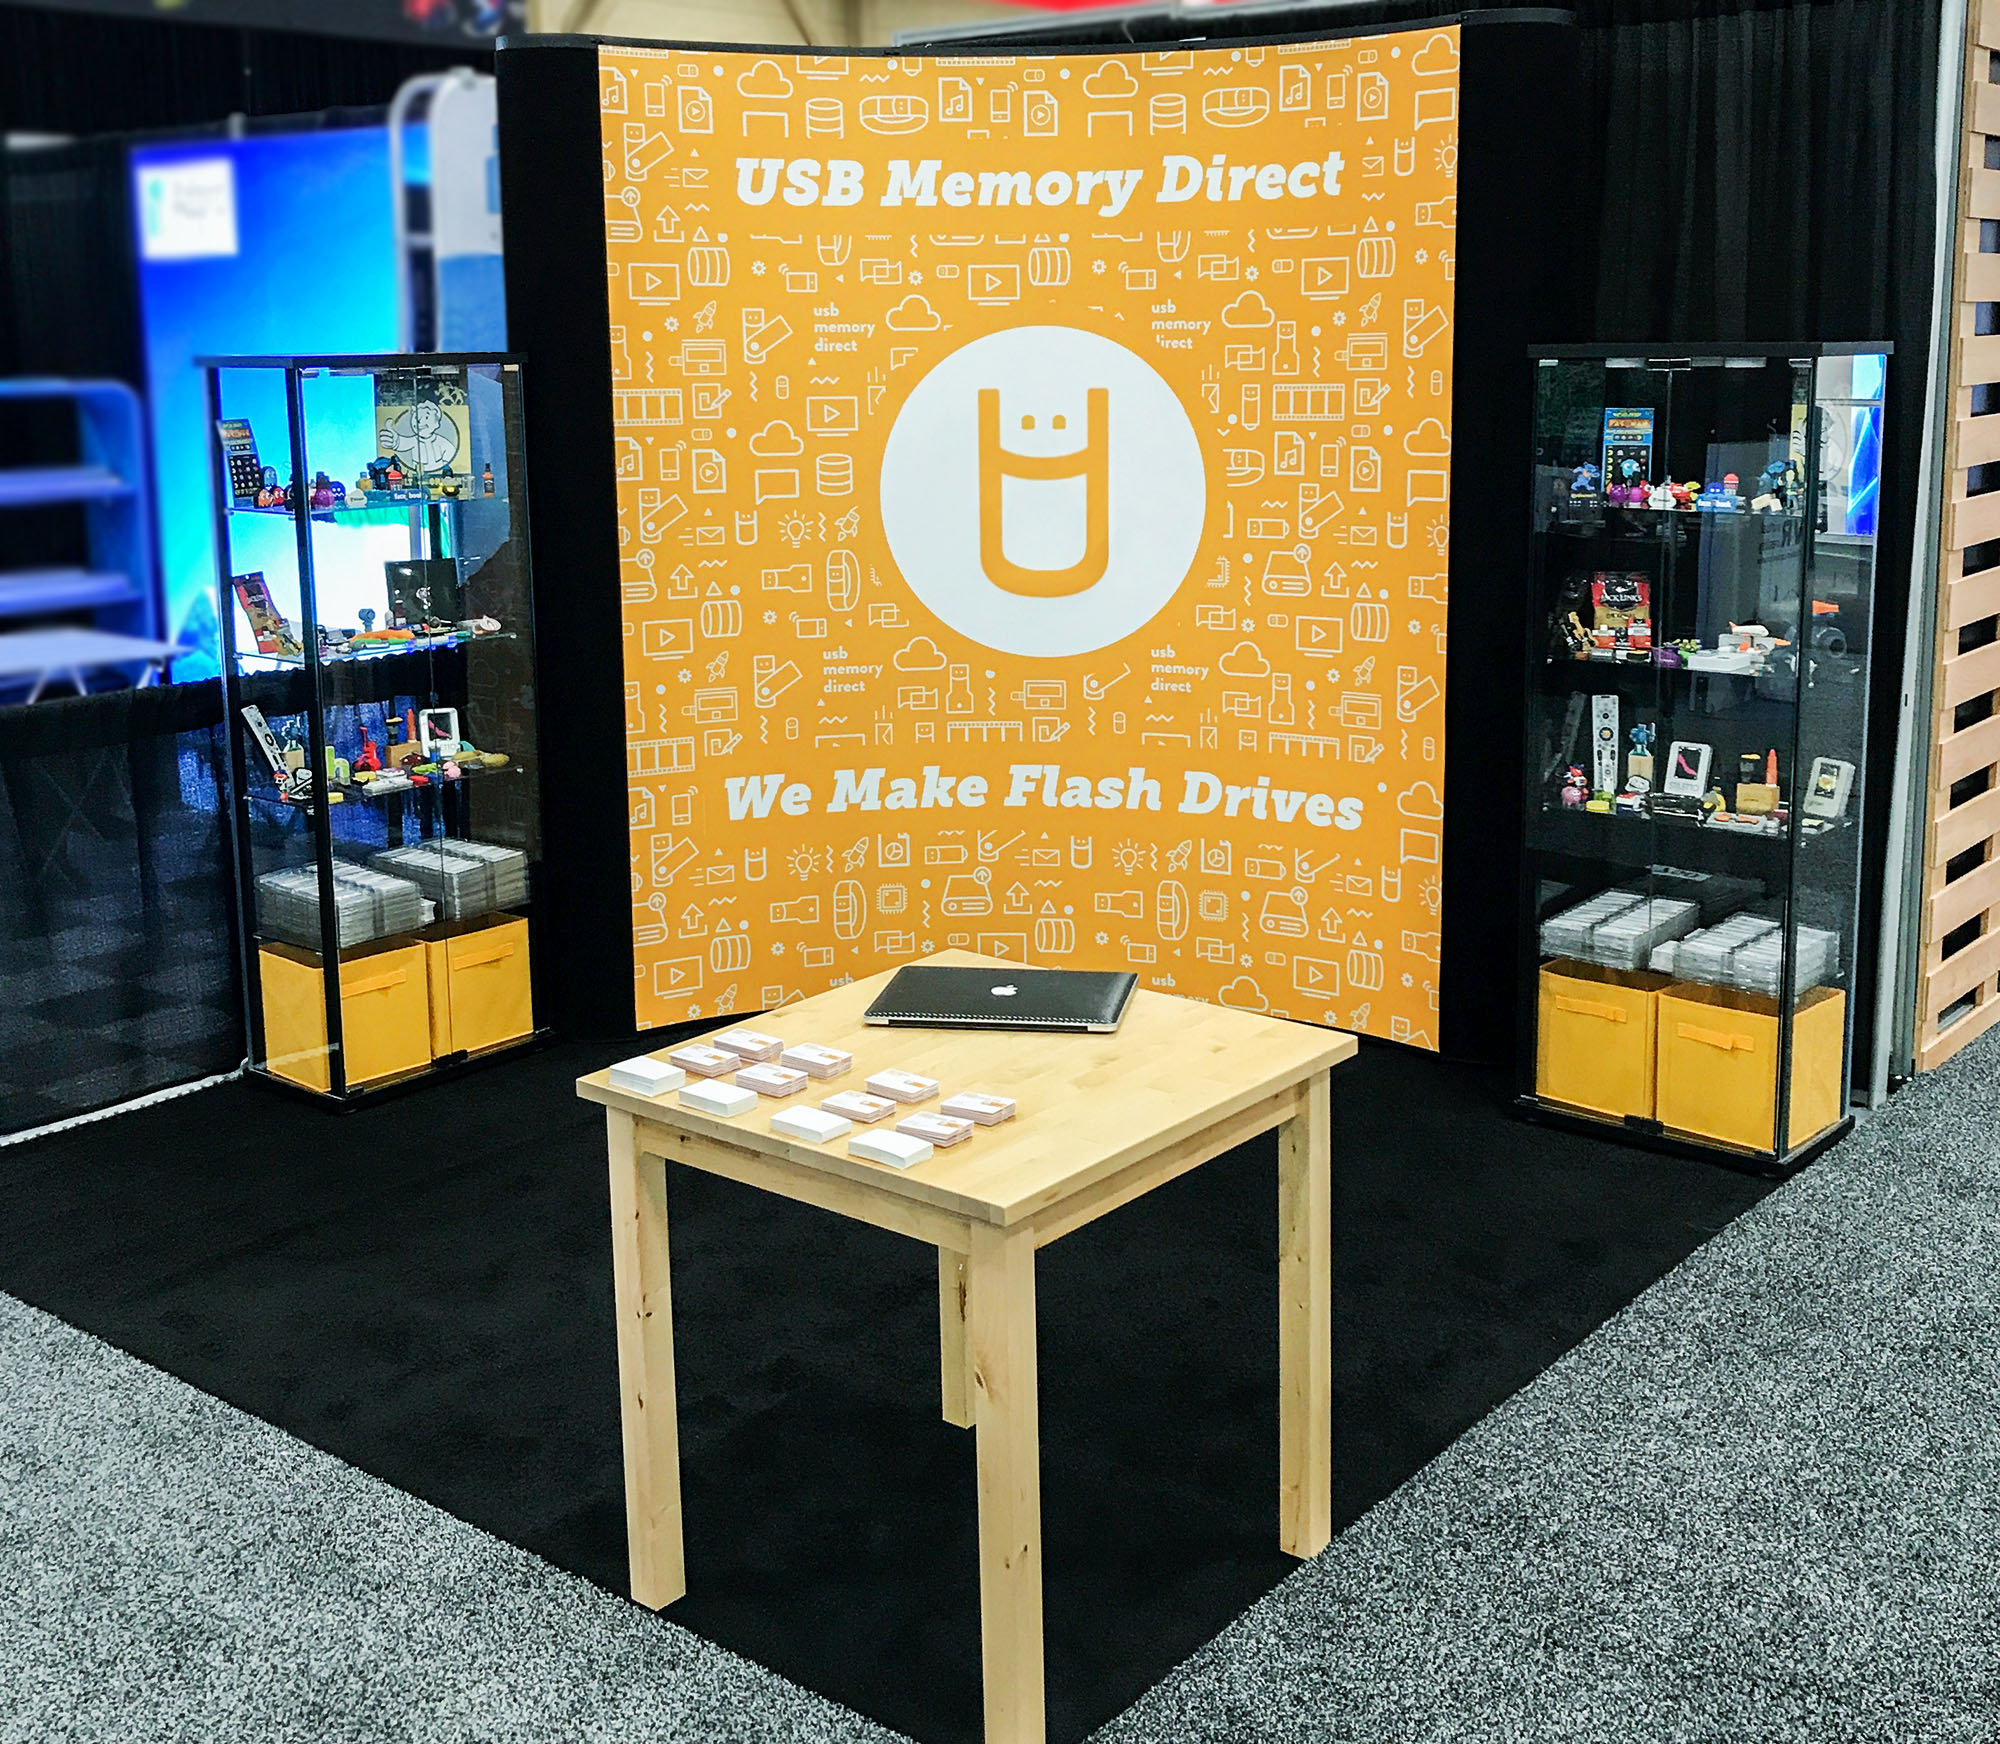 USB Memory Direct Trade Show Booth